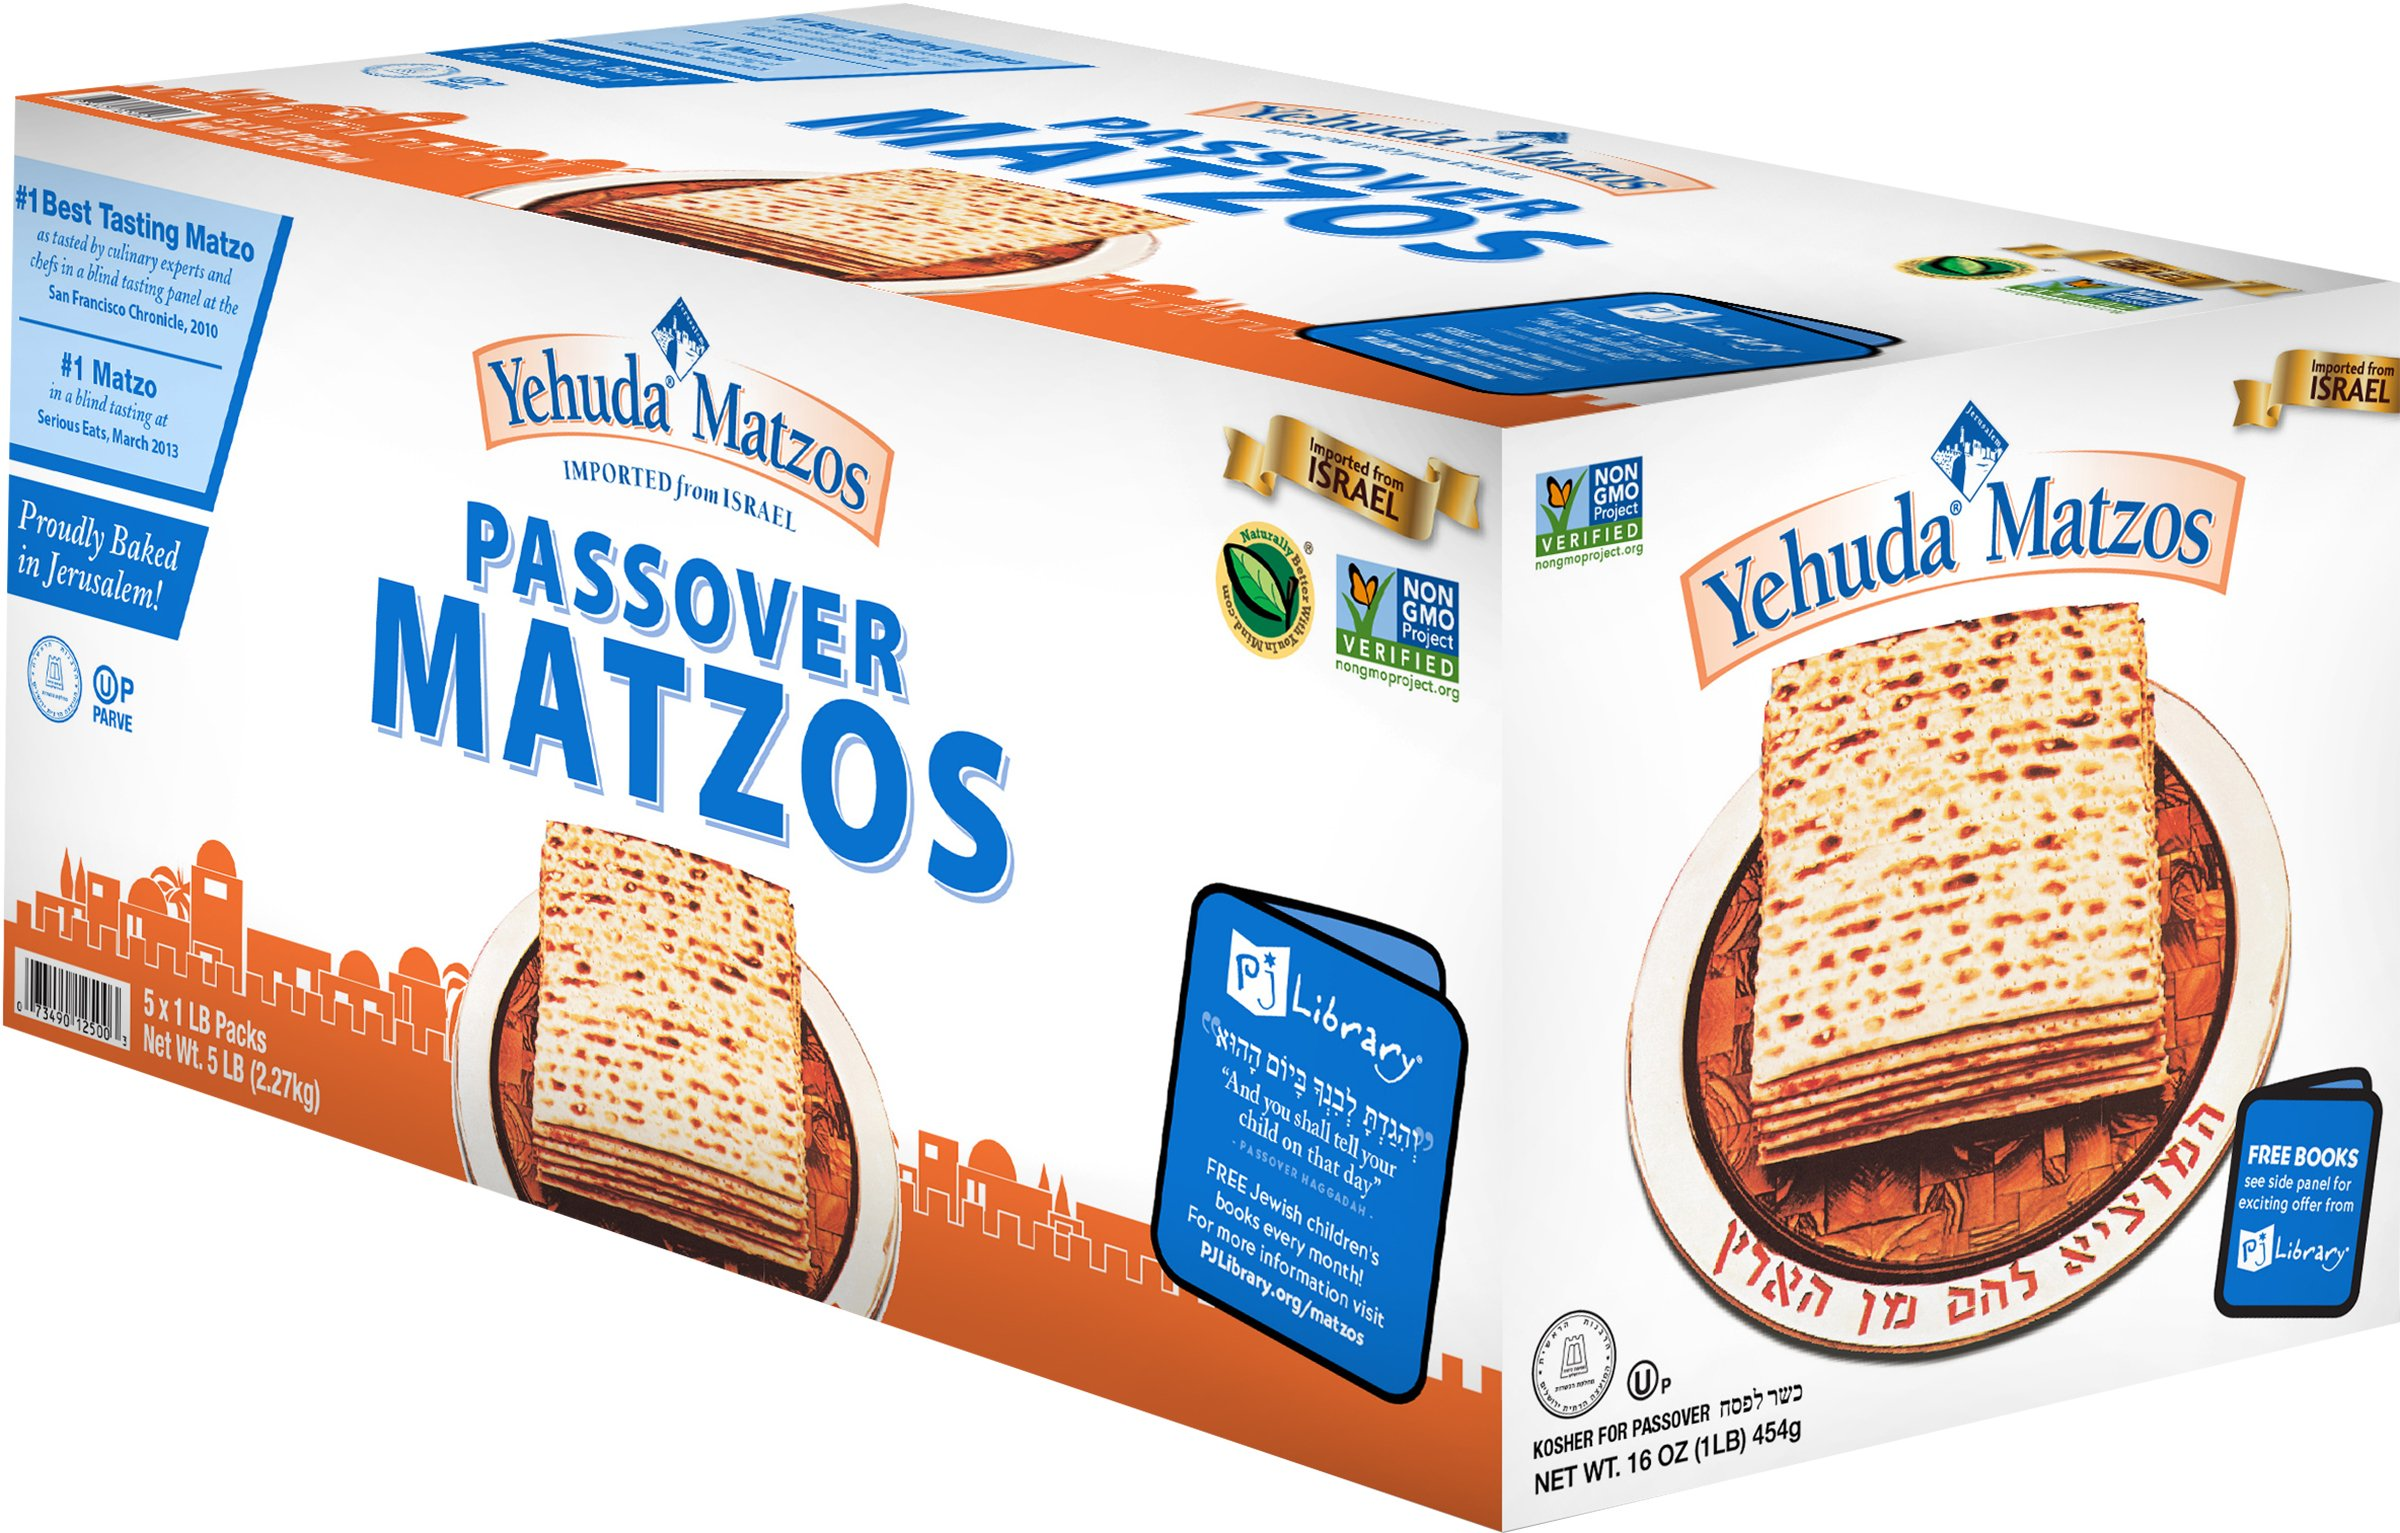 Yehuda Passover Matzos, 5 - 1 lb Packages with one Resealable Stay-Fresh Pouch by Yehuda